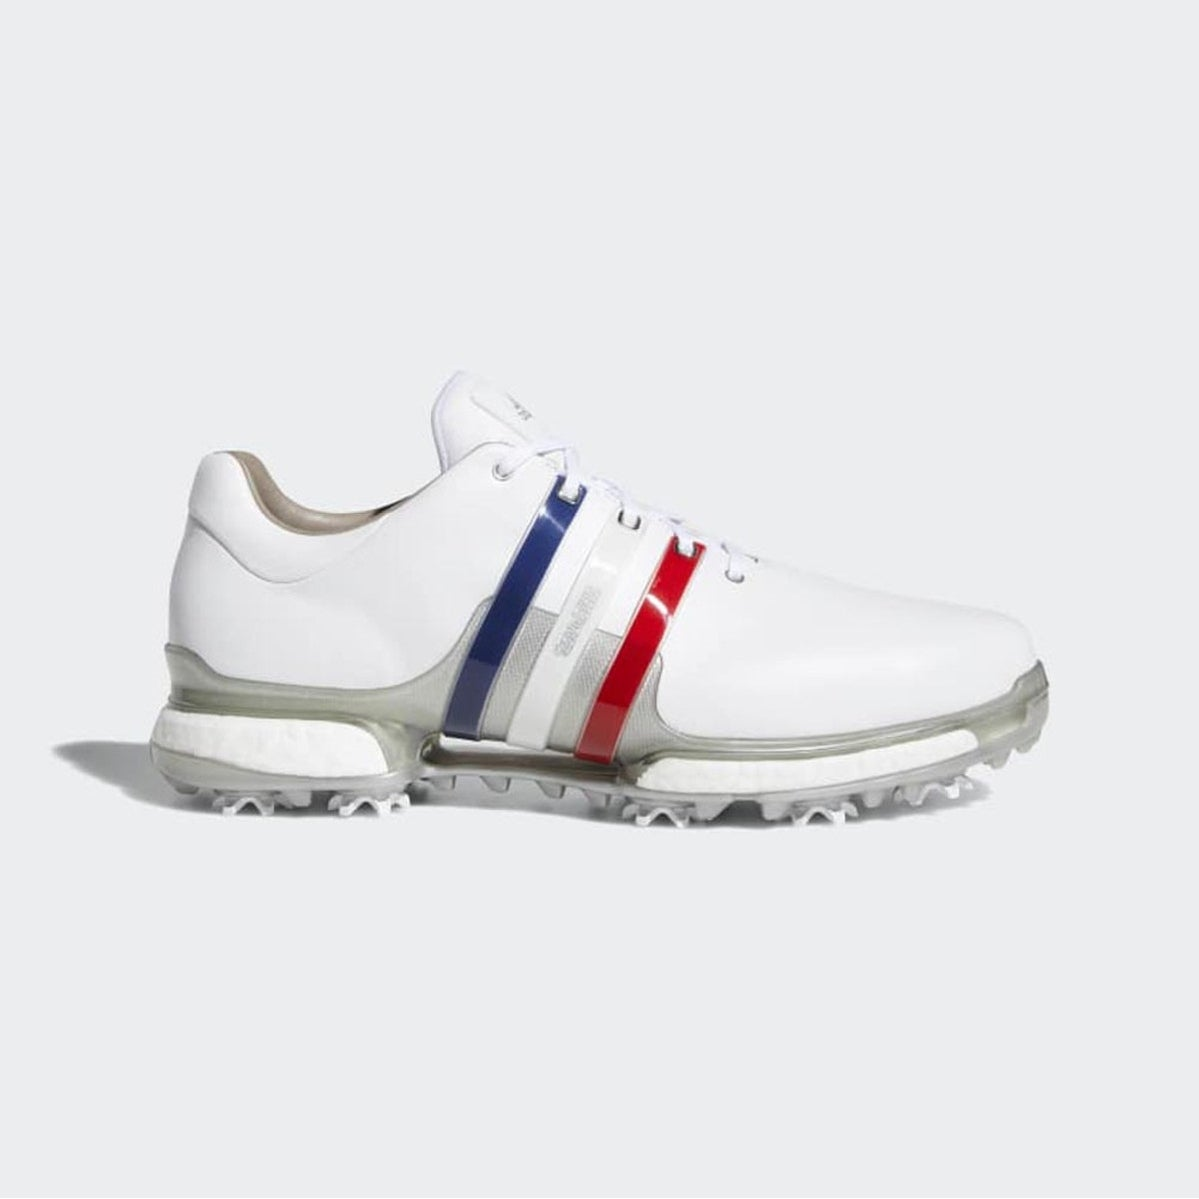 Shop Men S Adidas Tour 360 Boost 2 0 White Scarlet Silver Golf Shoes B41496 Wide Overstock 31149171